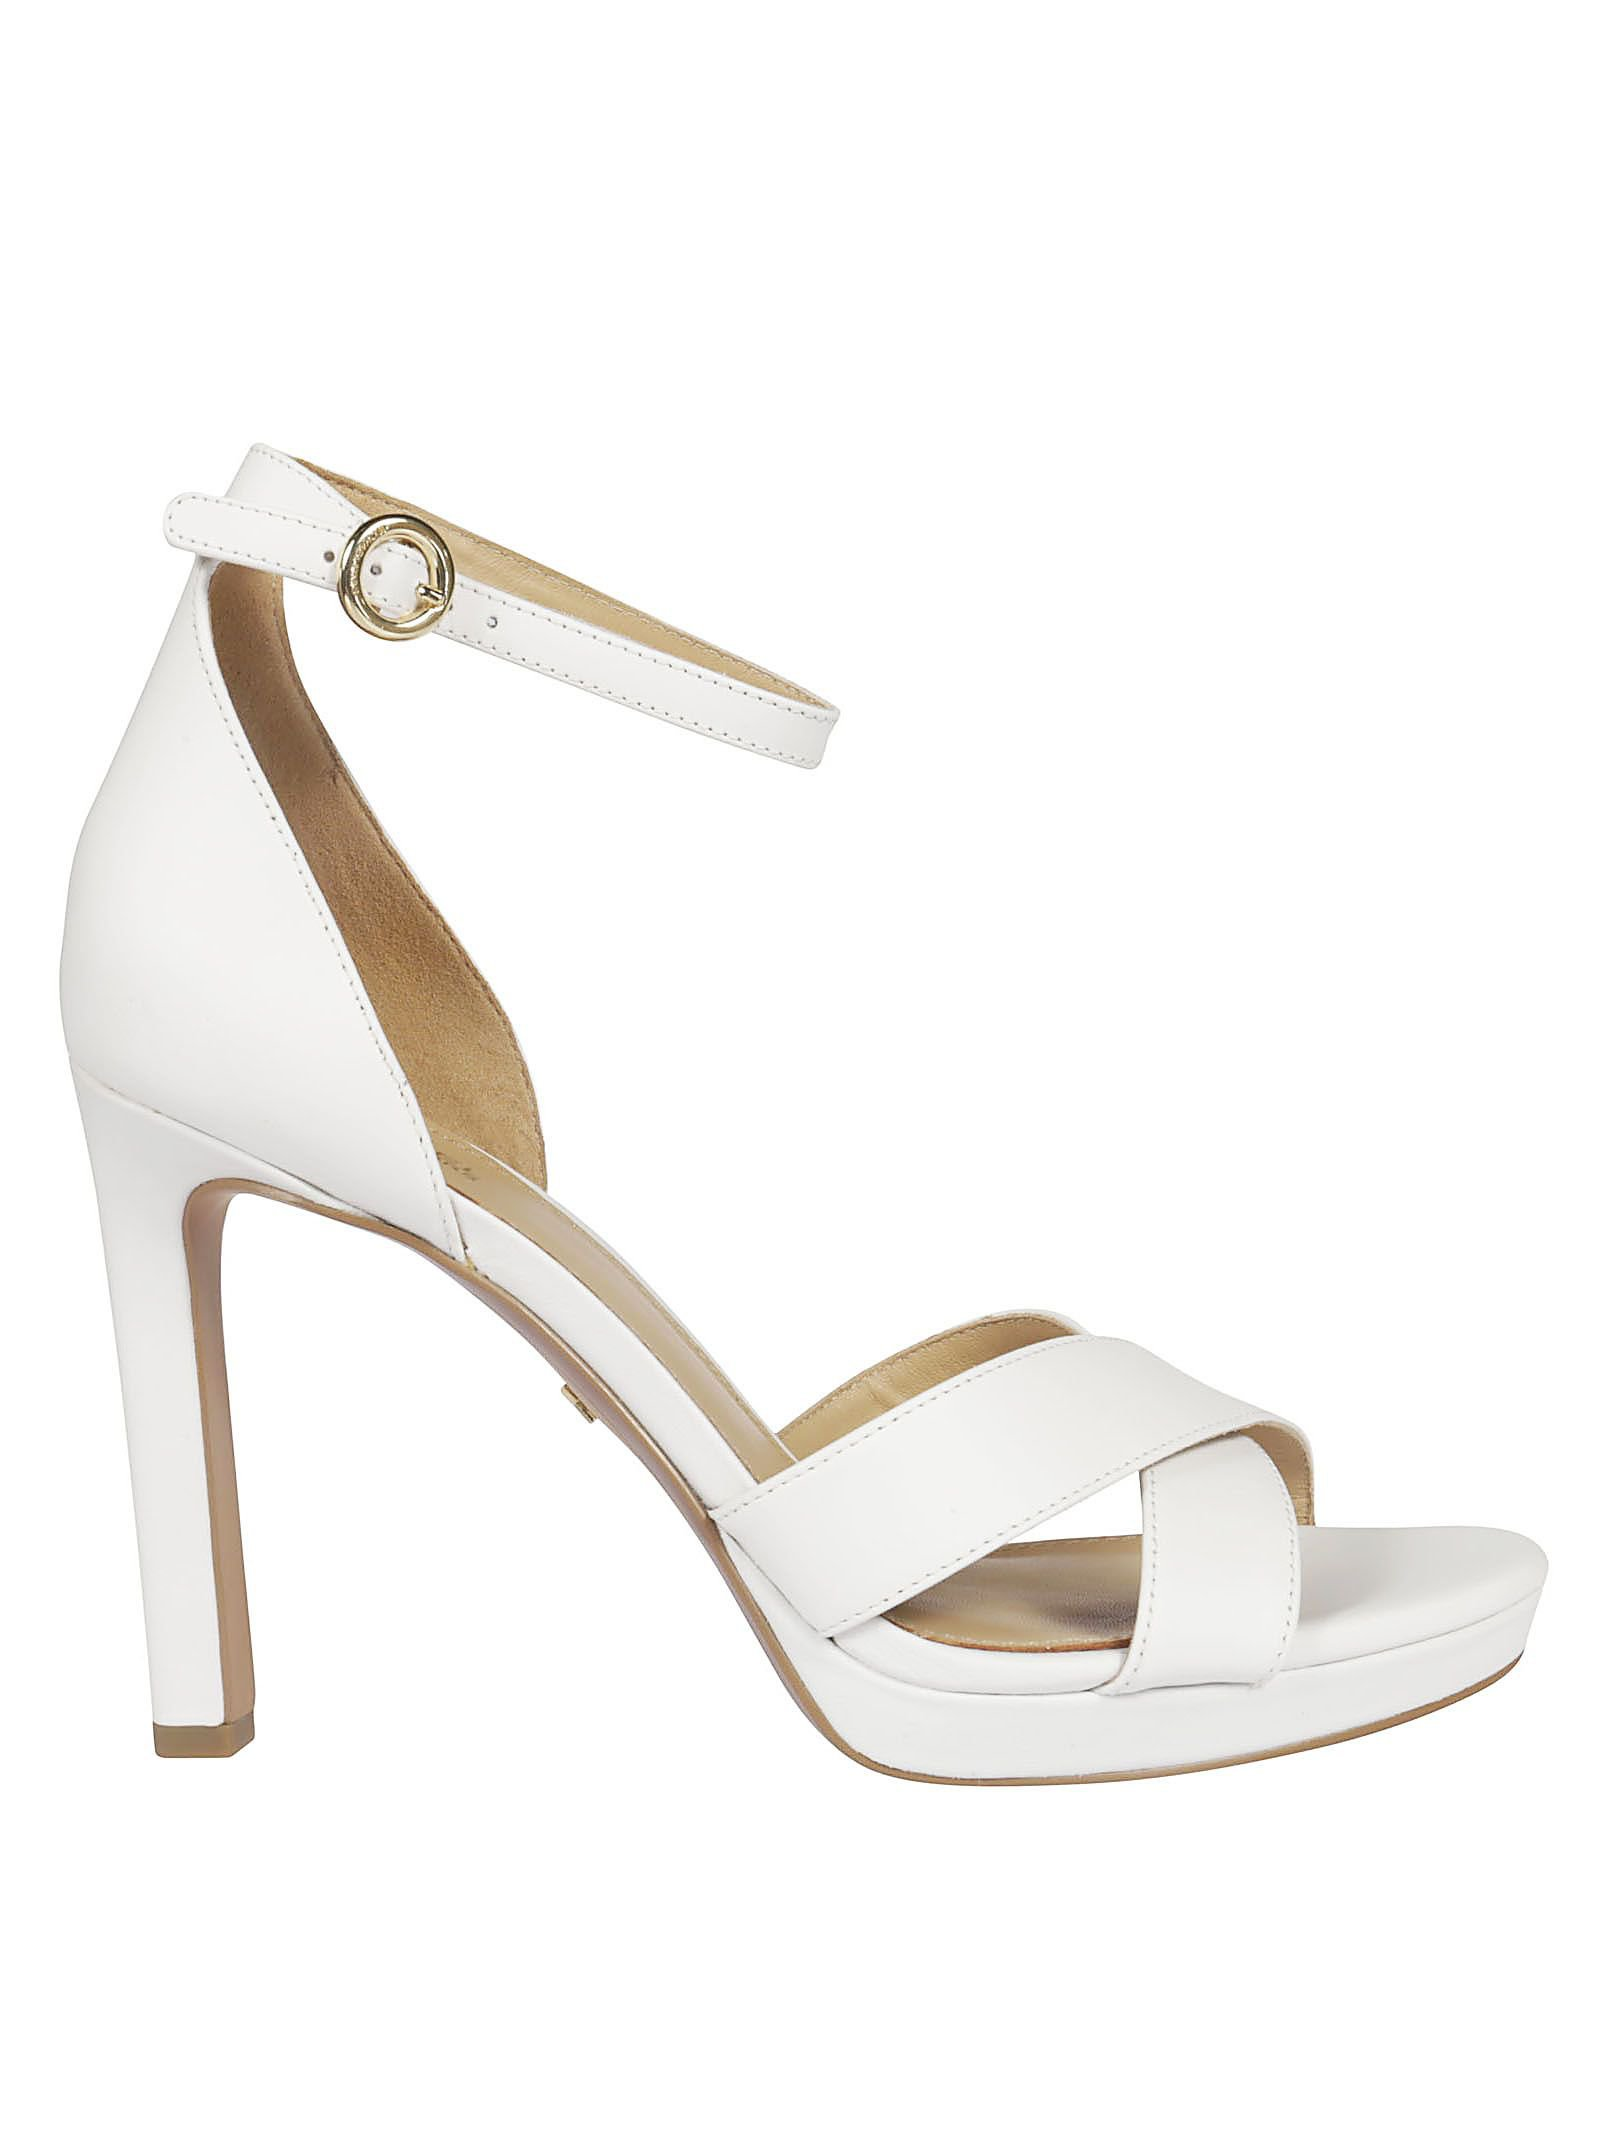 Michael Kors High-heeled Sandals